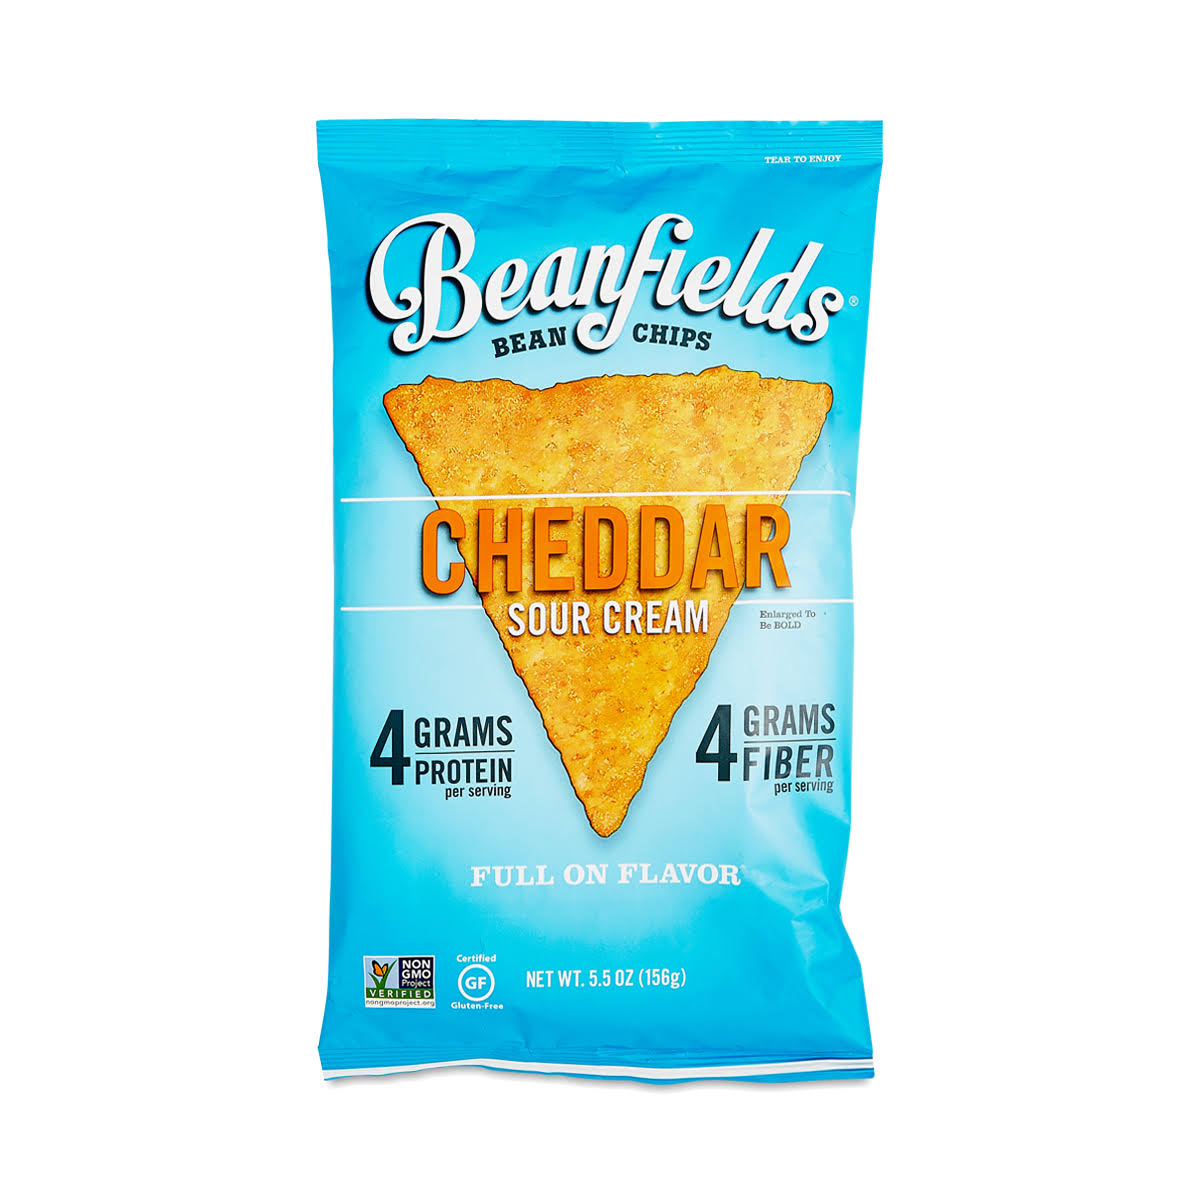 Beanfields Bean Chips, Cheddar Sour Cream - 5.5 oz